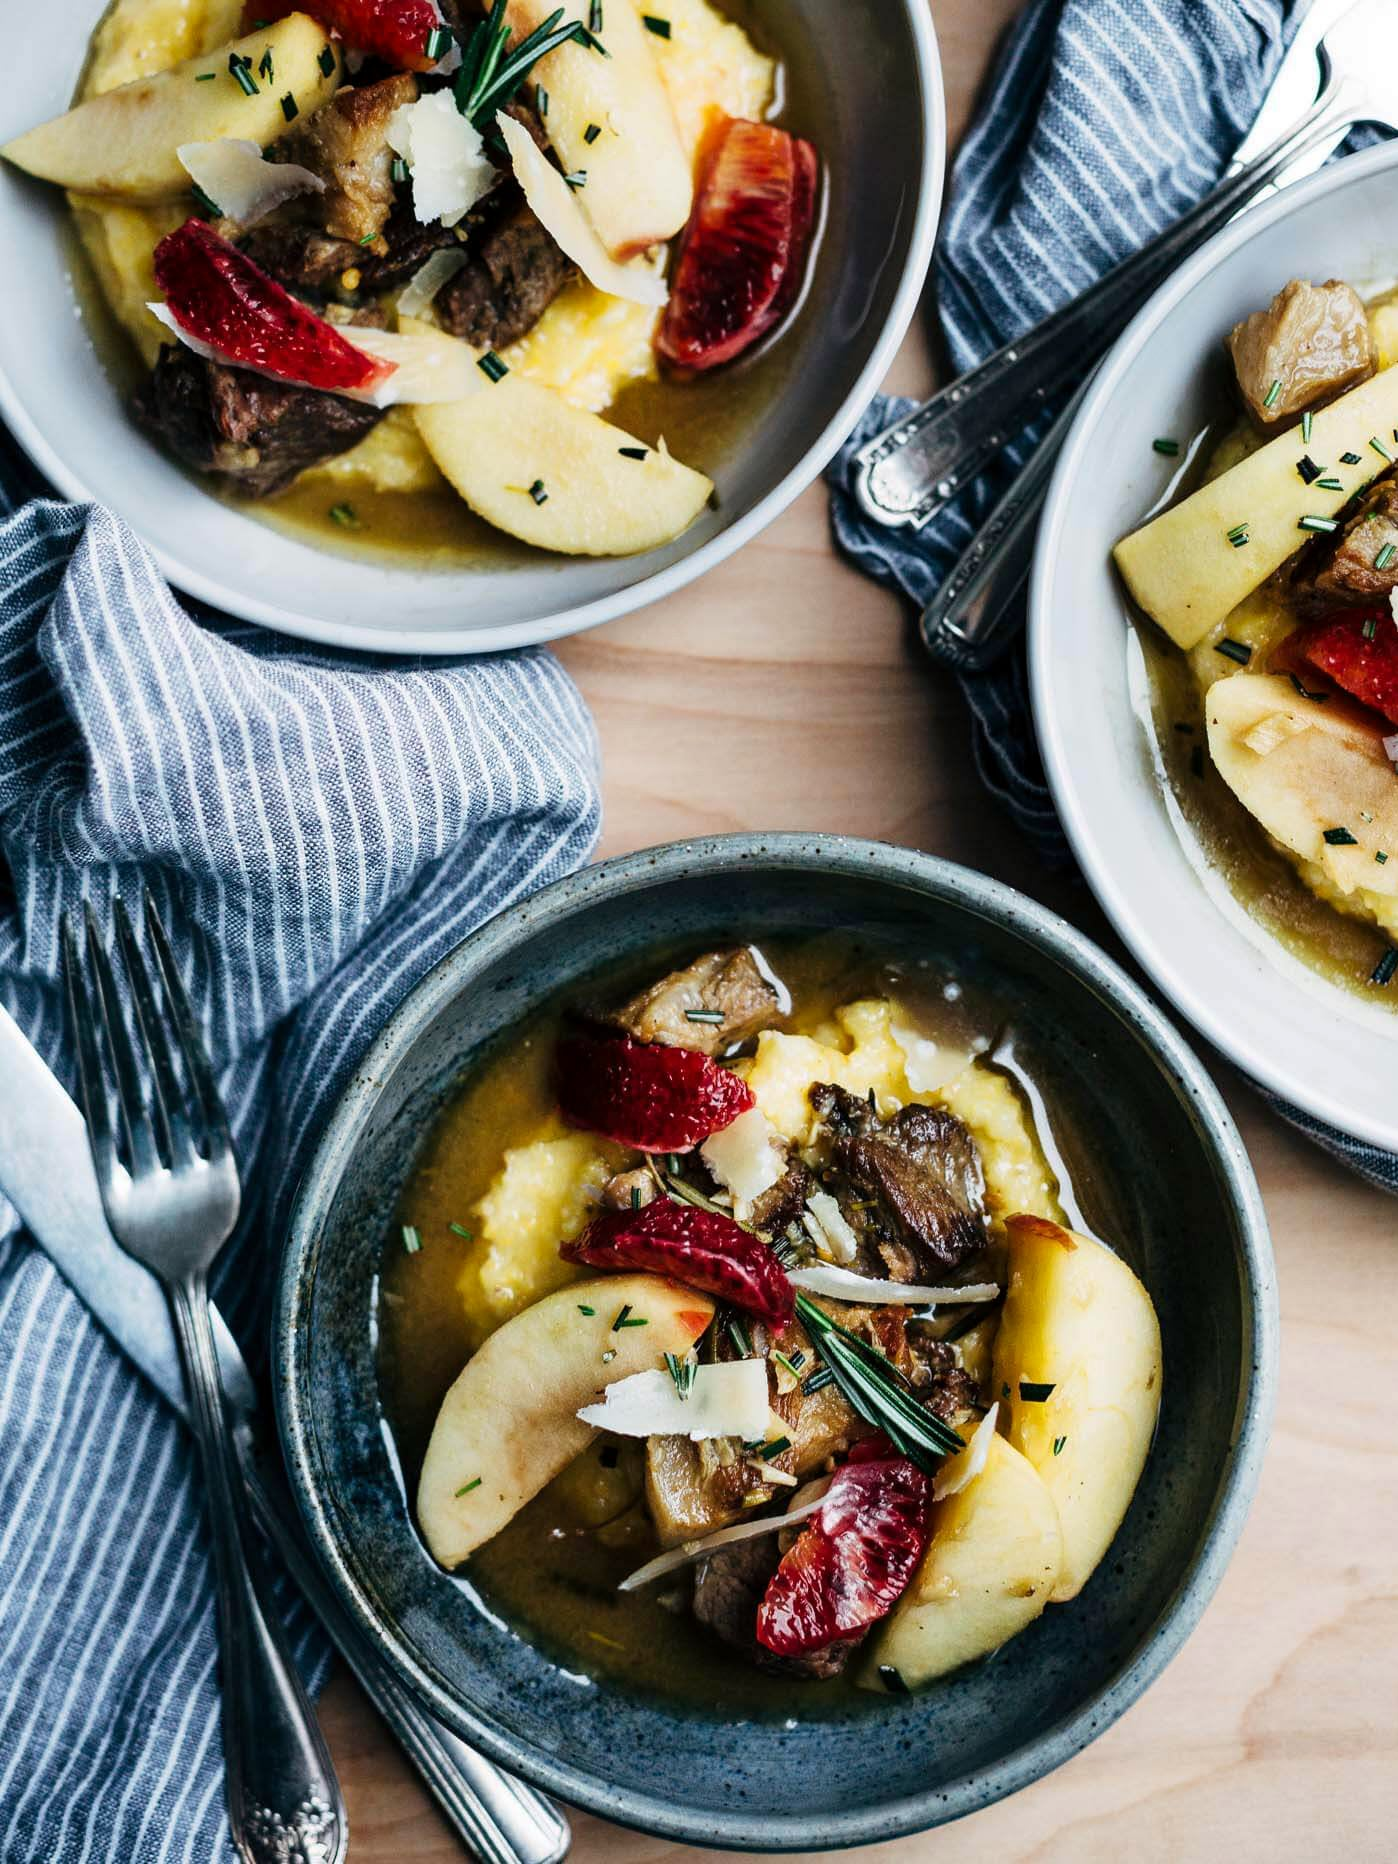 00-FEATURE-best-apple-recipes-BRAISED-PORK-WITH-APPLES-AND-ROSEMARY-domino